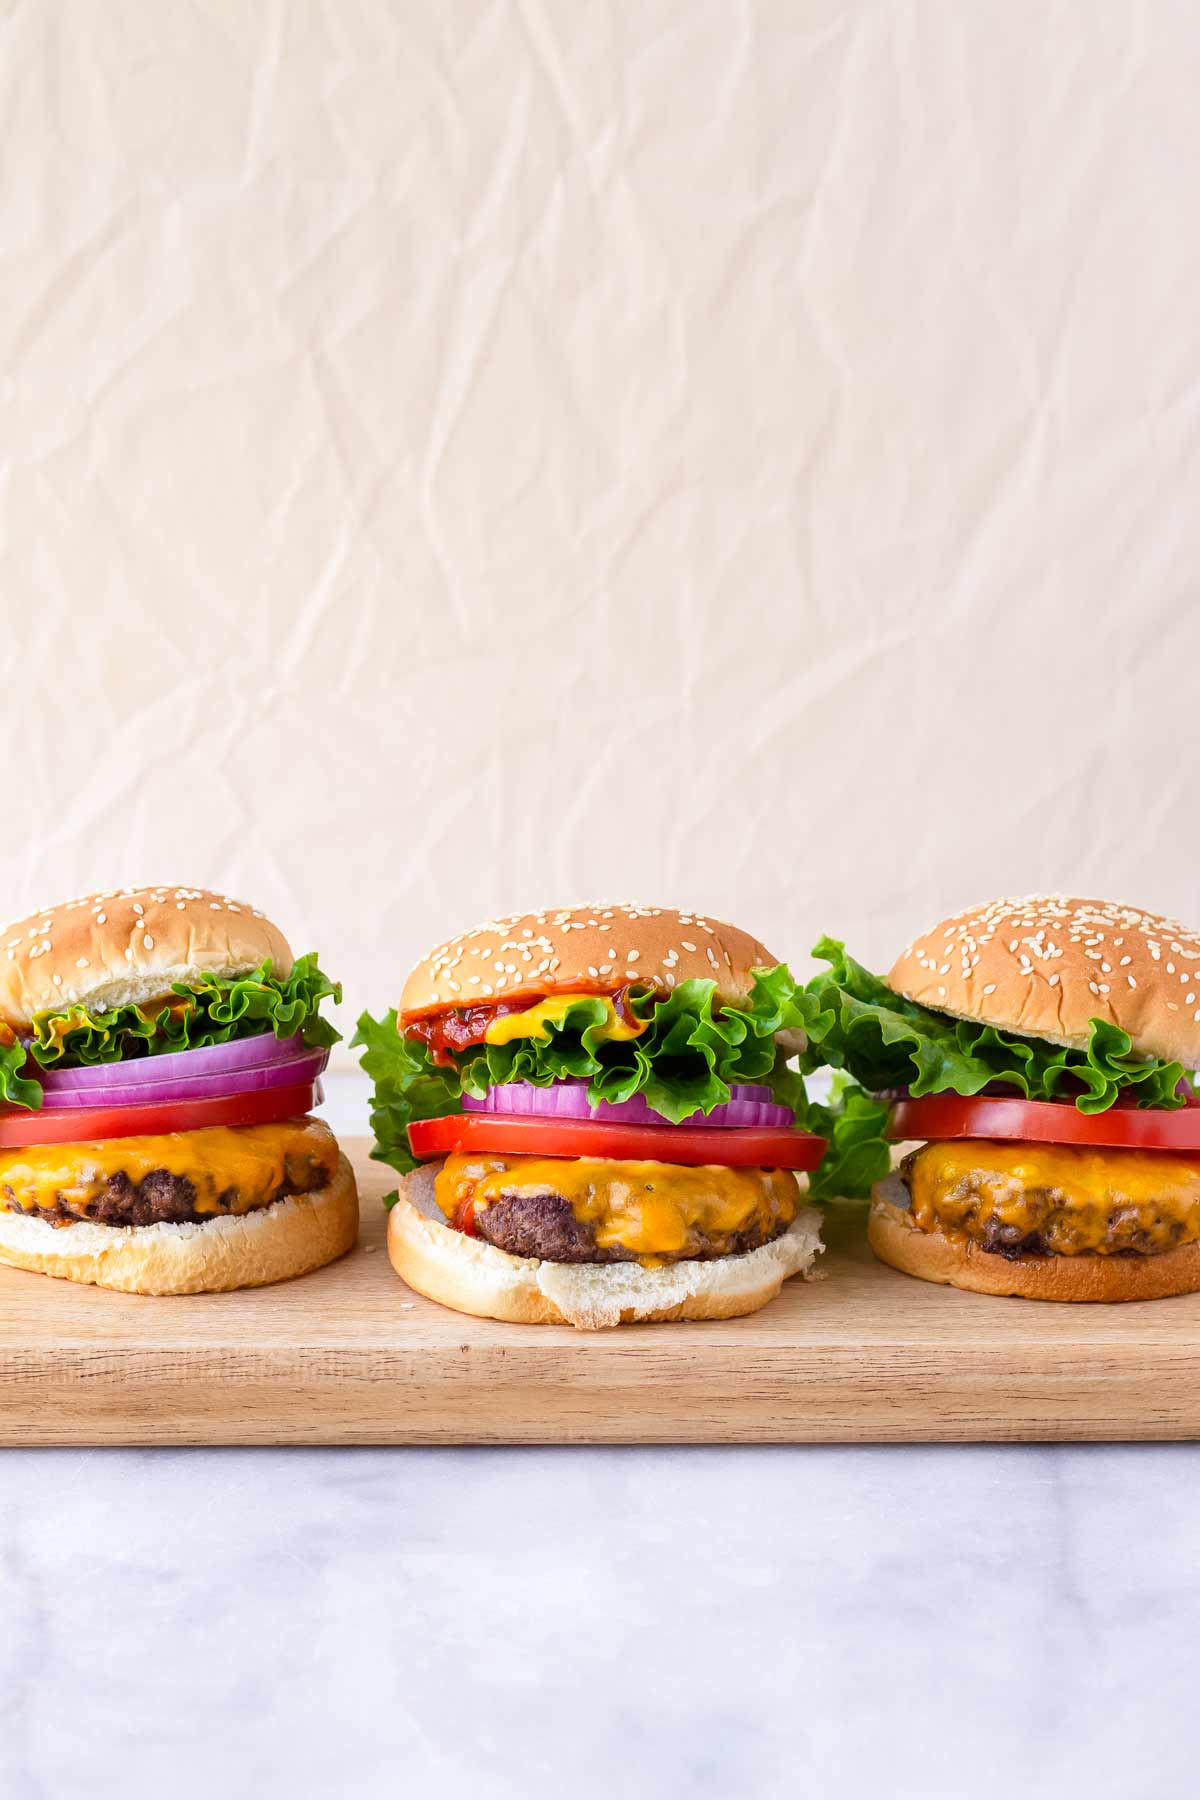 straight view three assembled American burgers arranged on a board